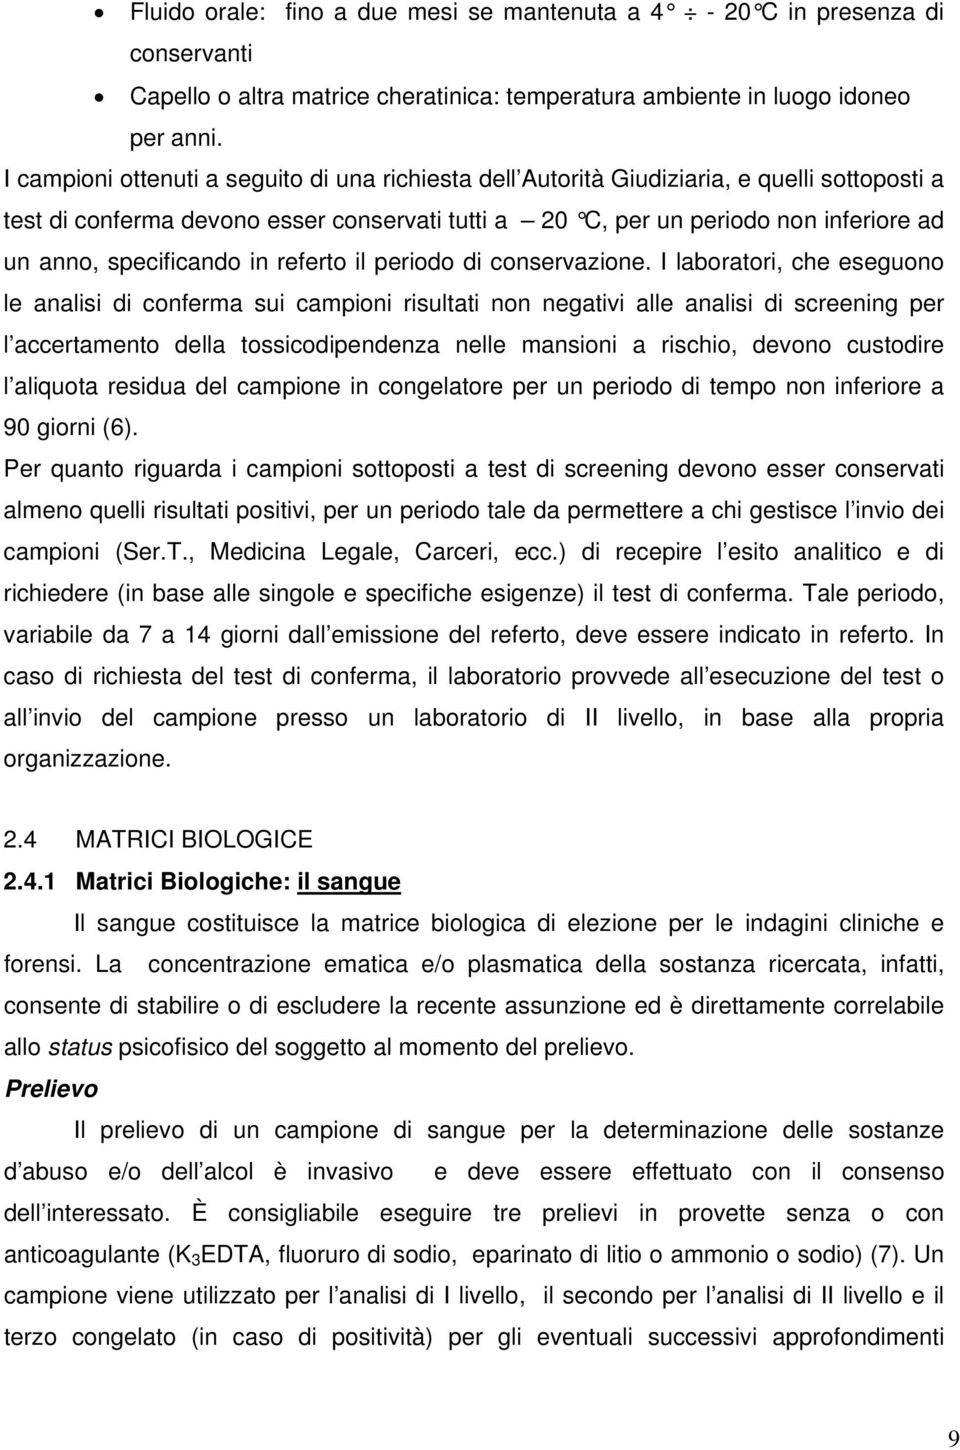 specificando in referto il periodo di conservazione.